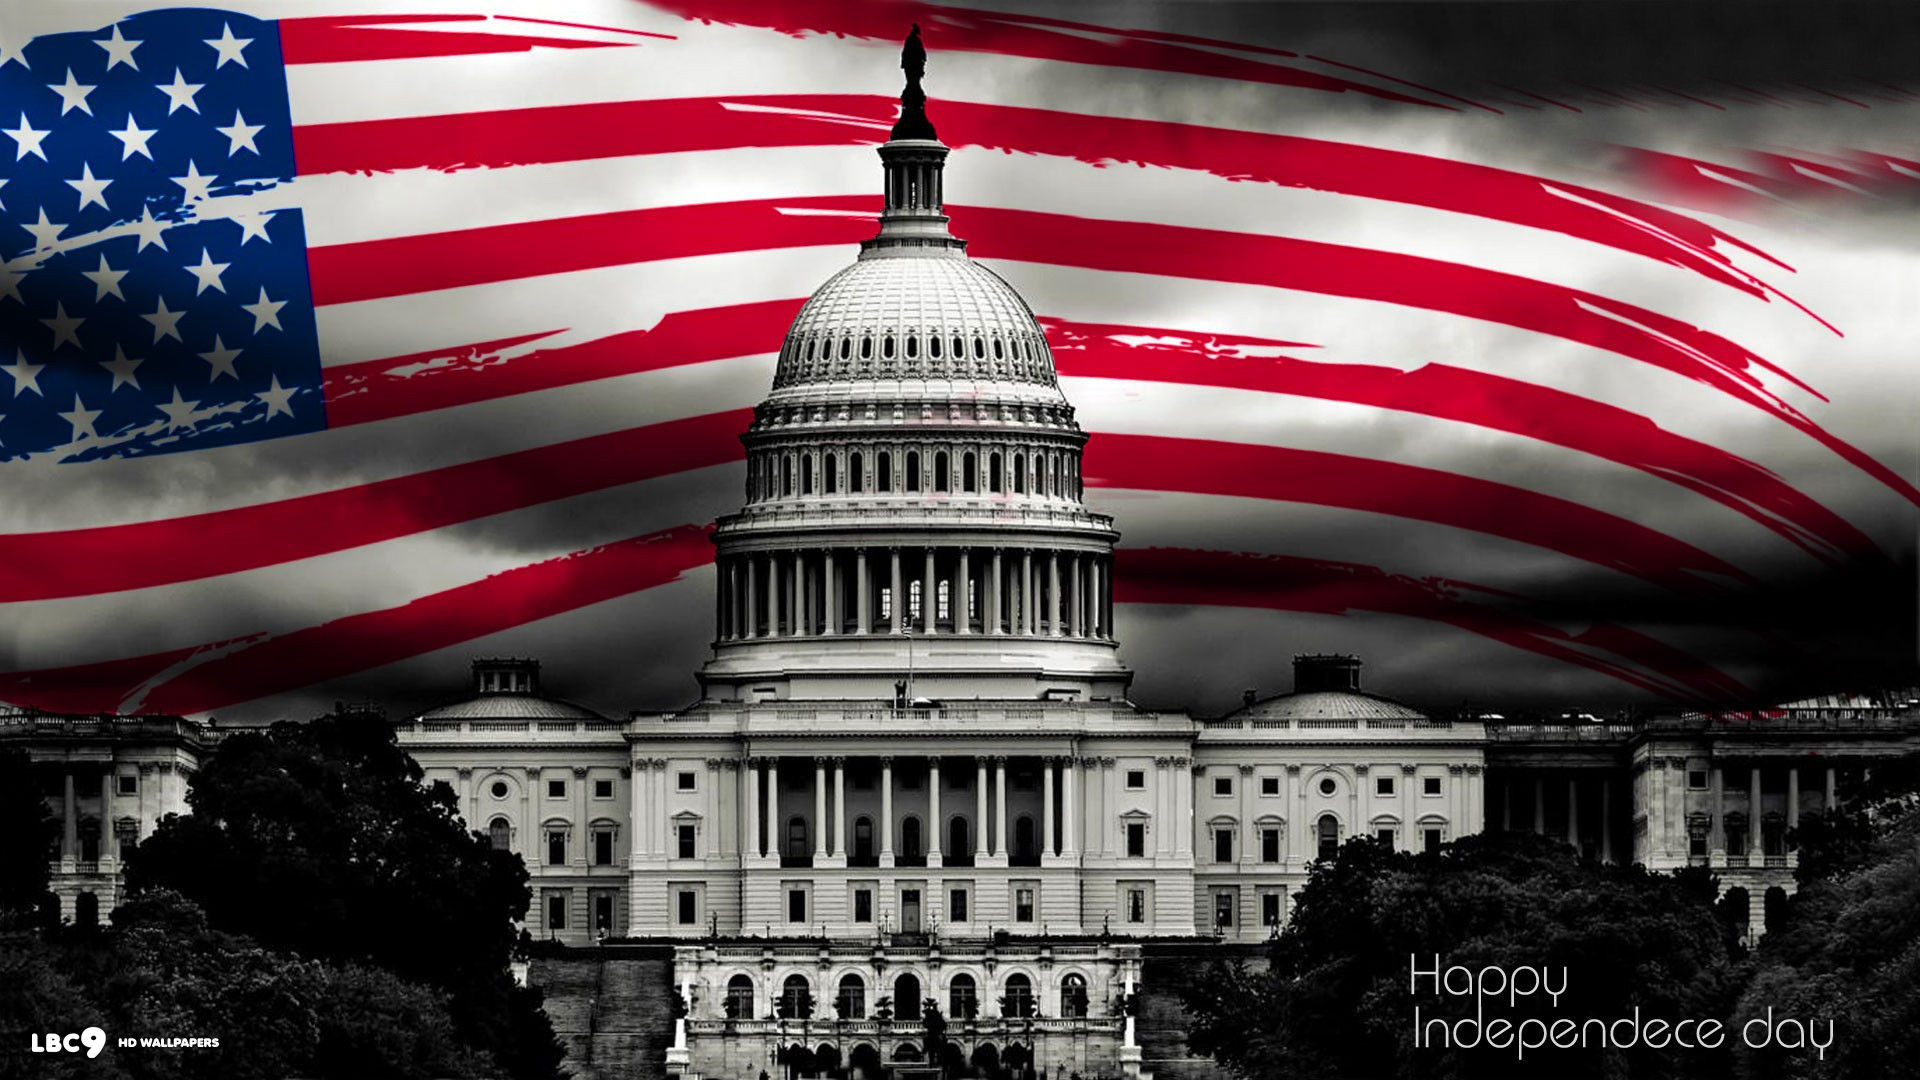 1920x1080 happy independence day 4th july holiday us flag white house holiday desktop  wallpaper